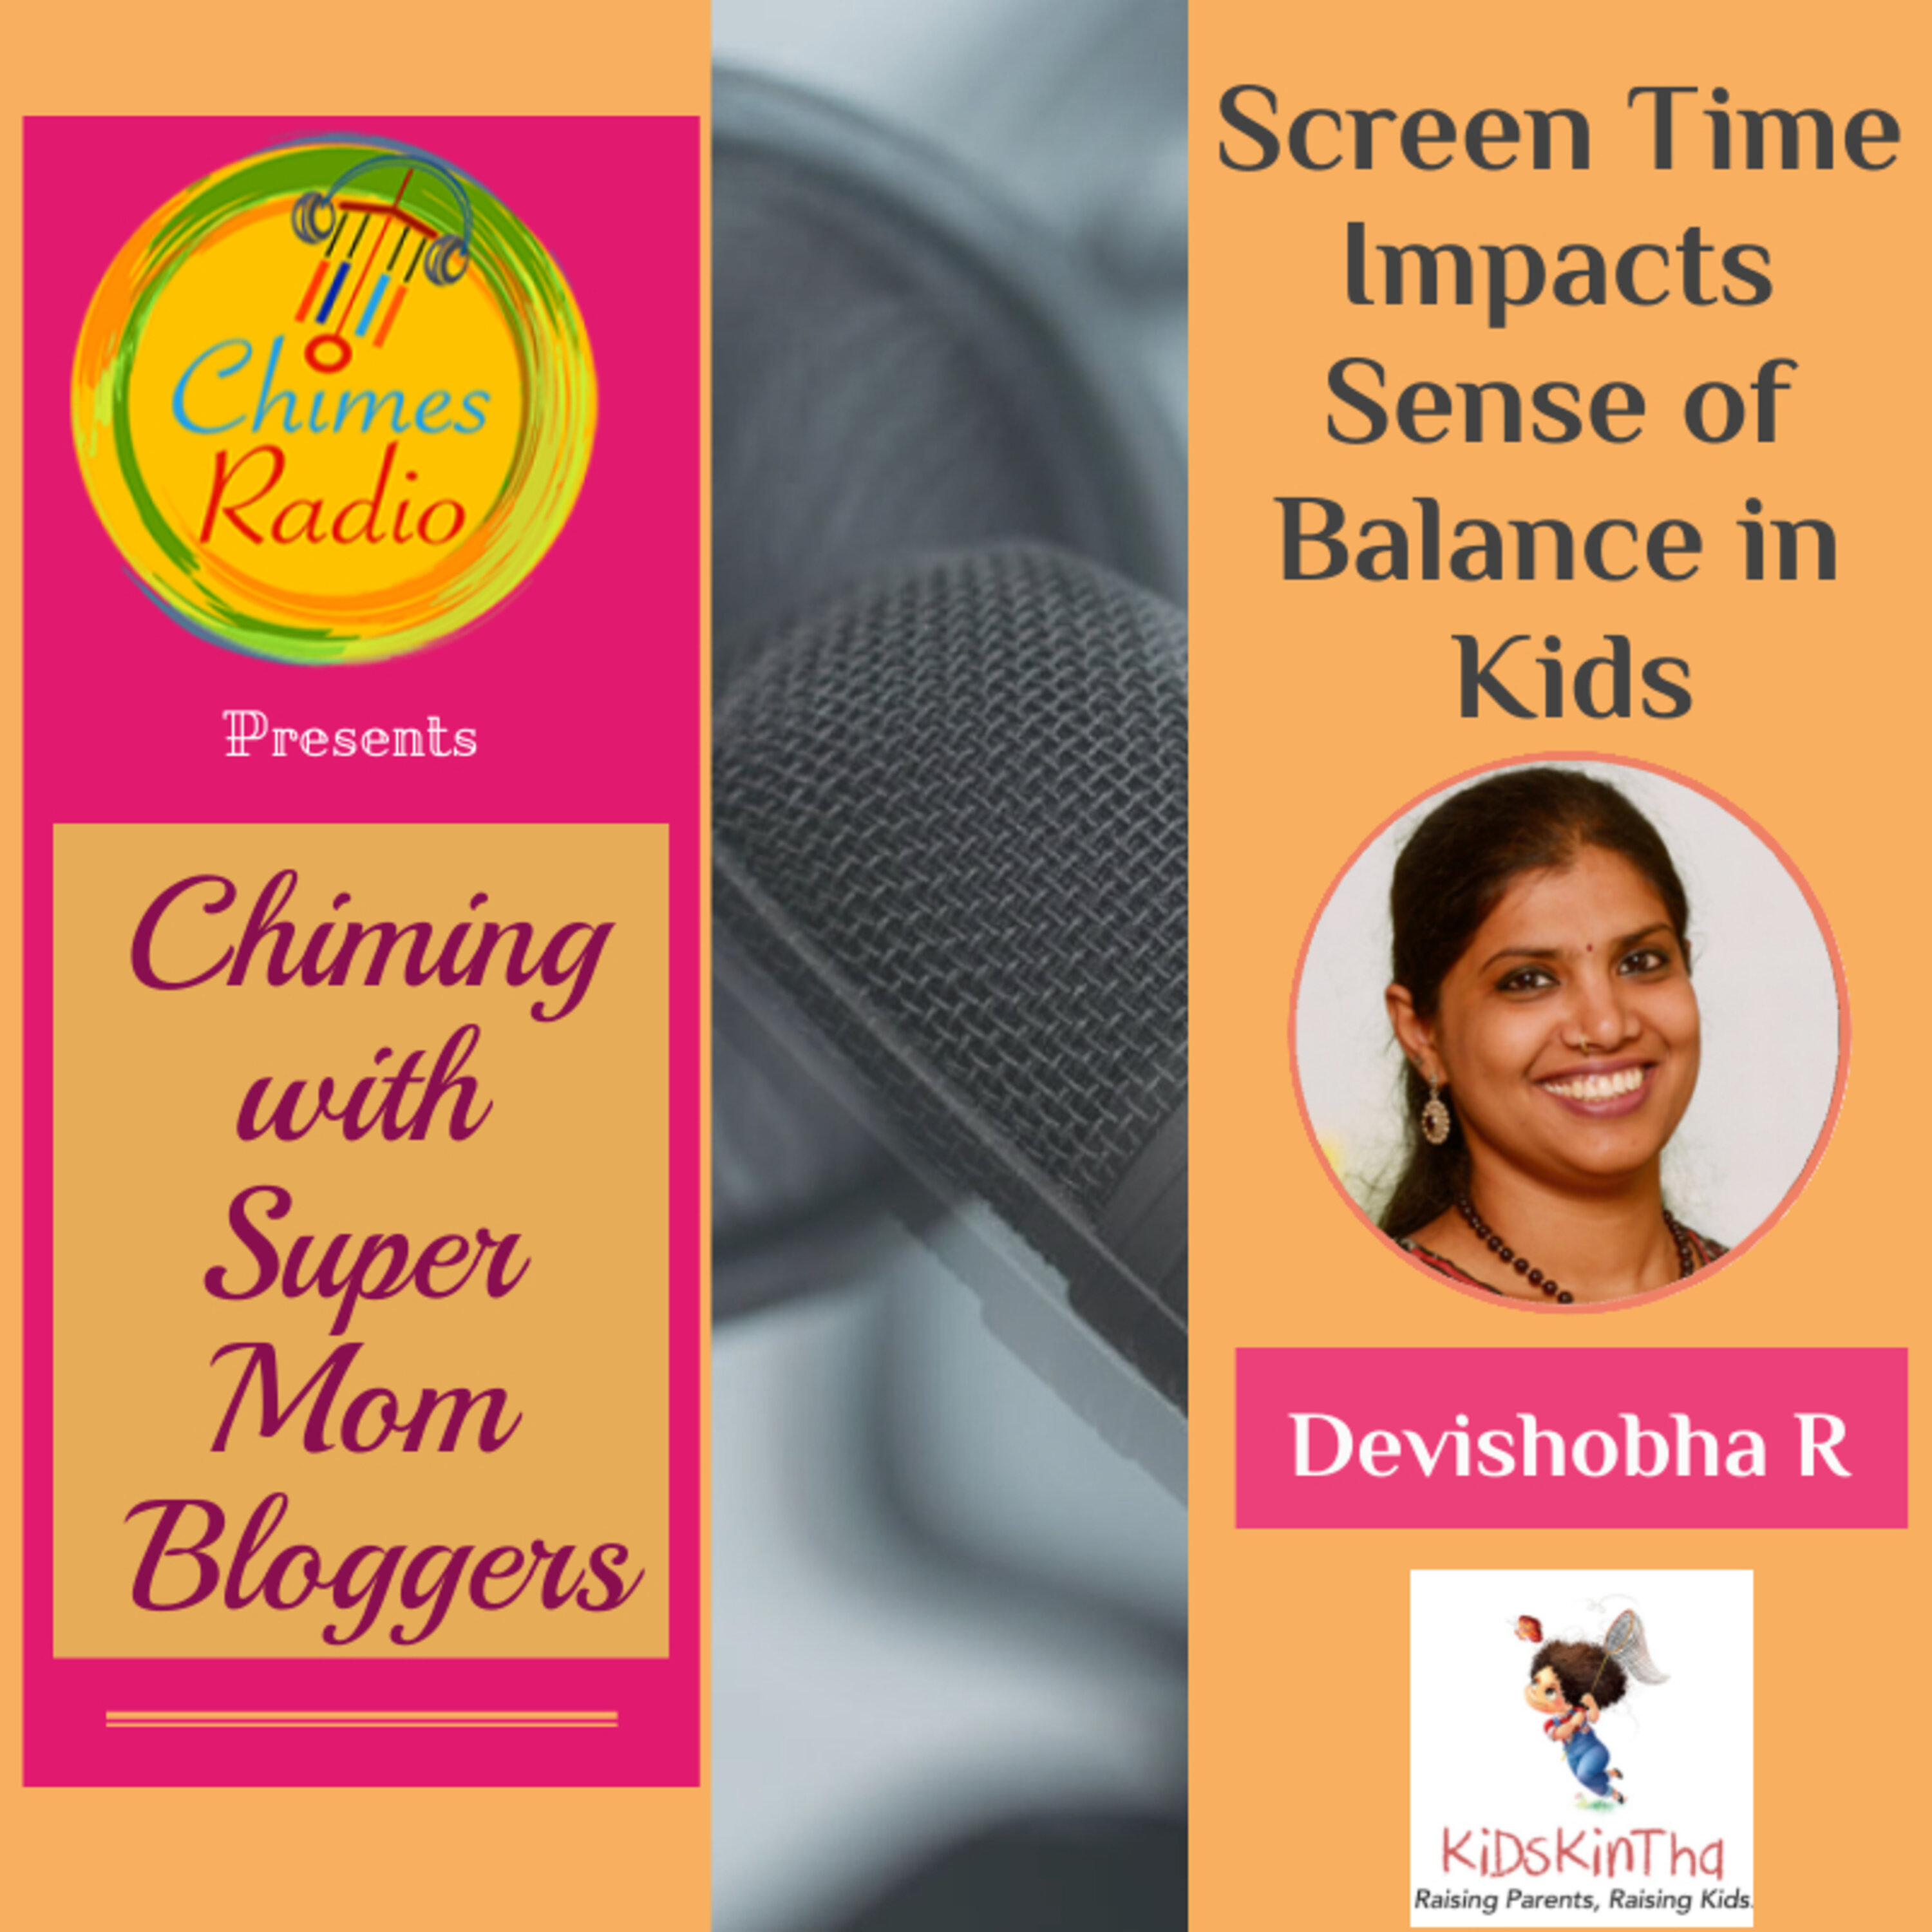 Super Mom Bloggers - Screen Time Impacts Sense of Balance in Kids